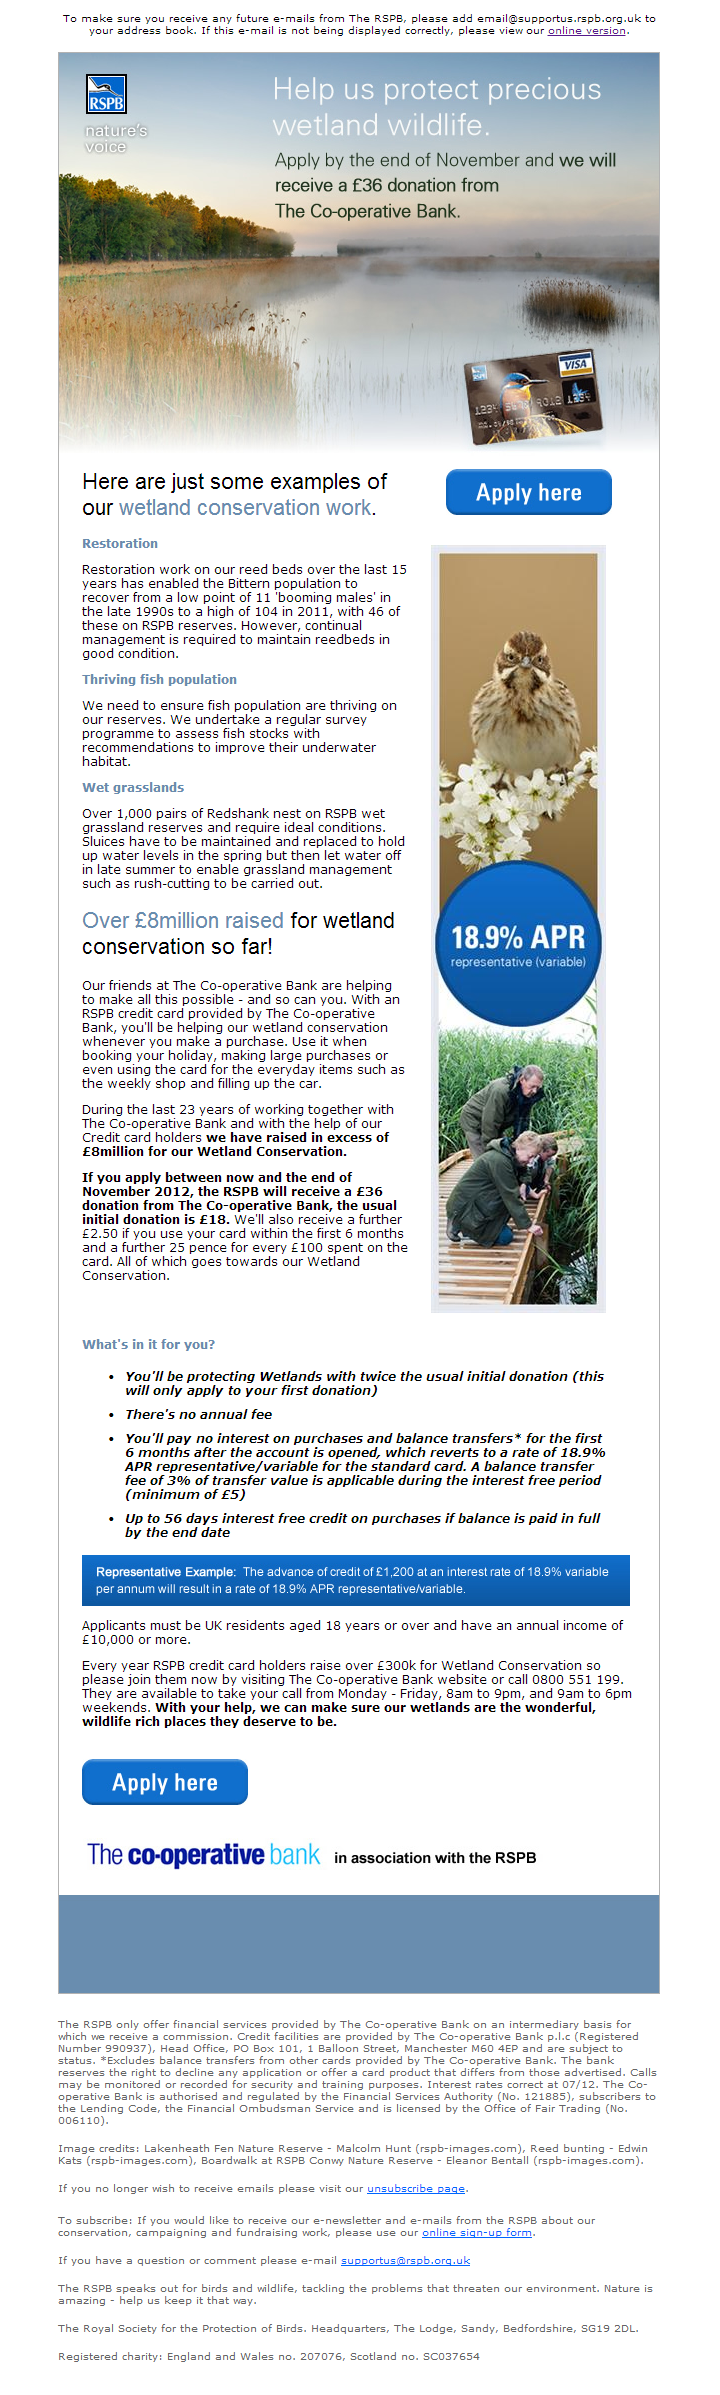 The Co-operative - Wetland Conservation